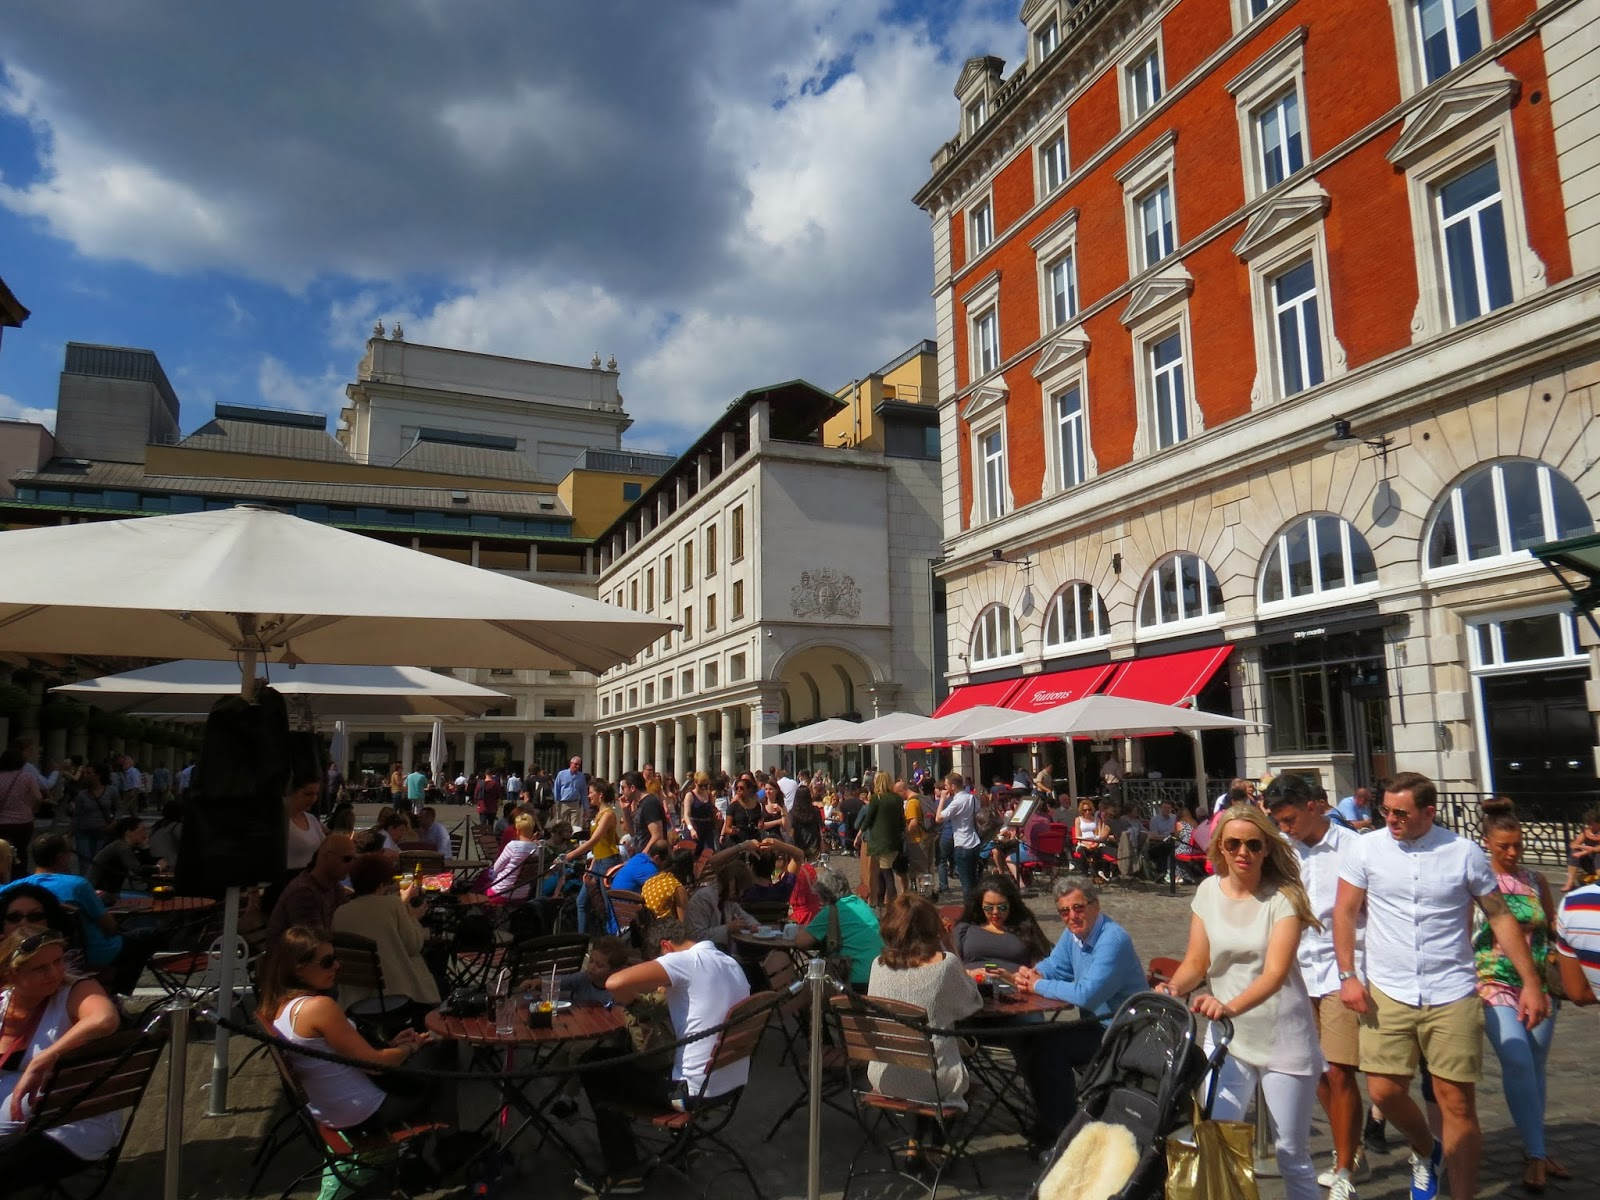 Covent garden square